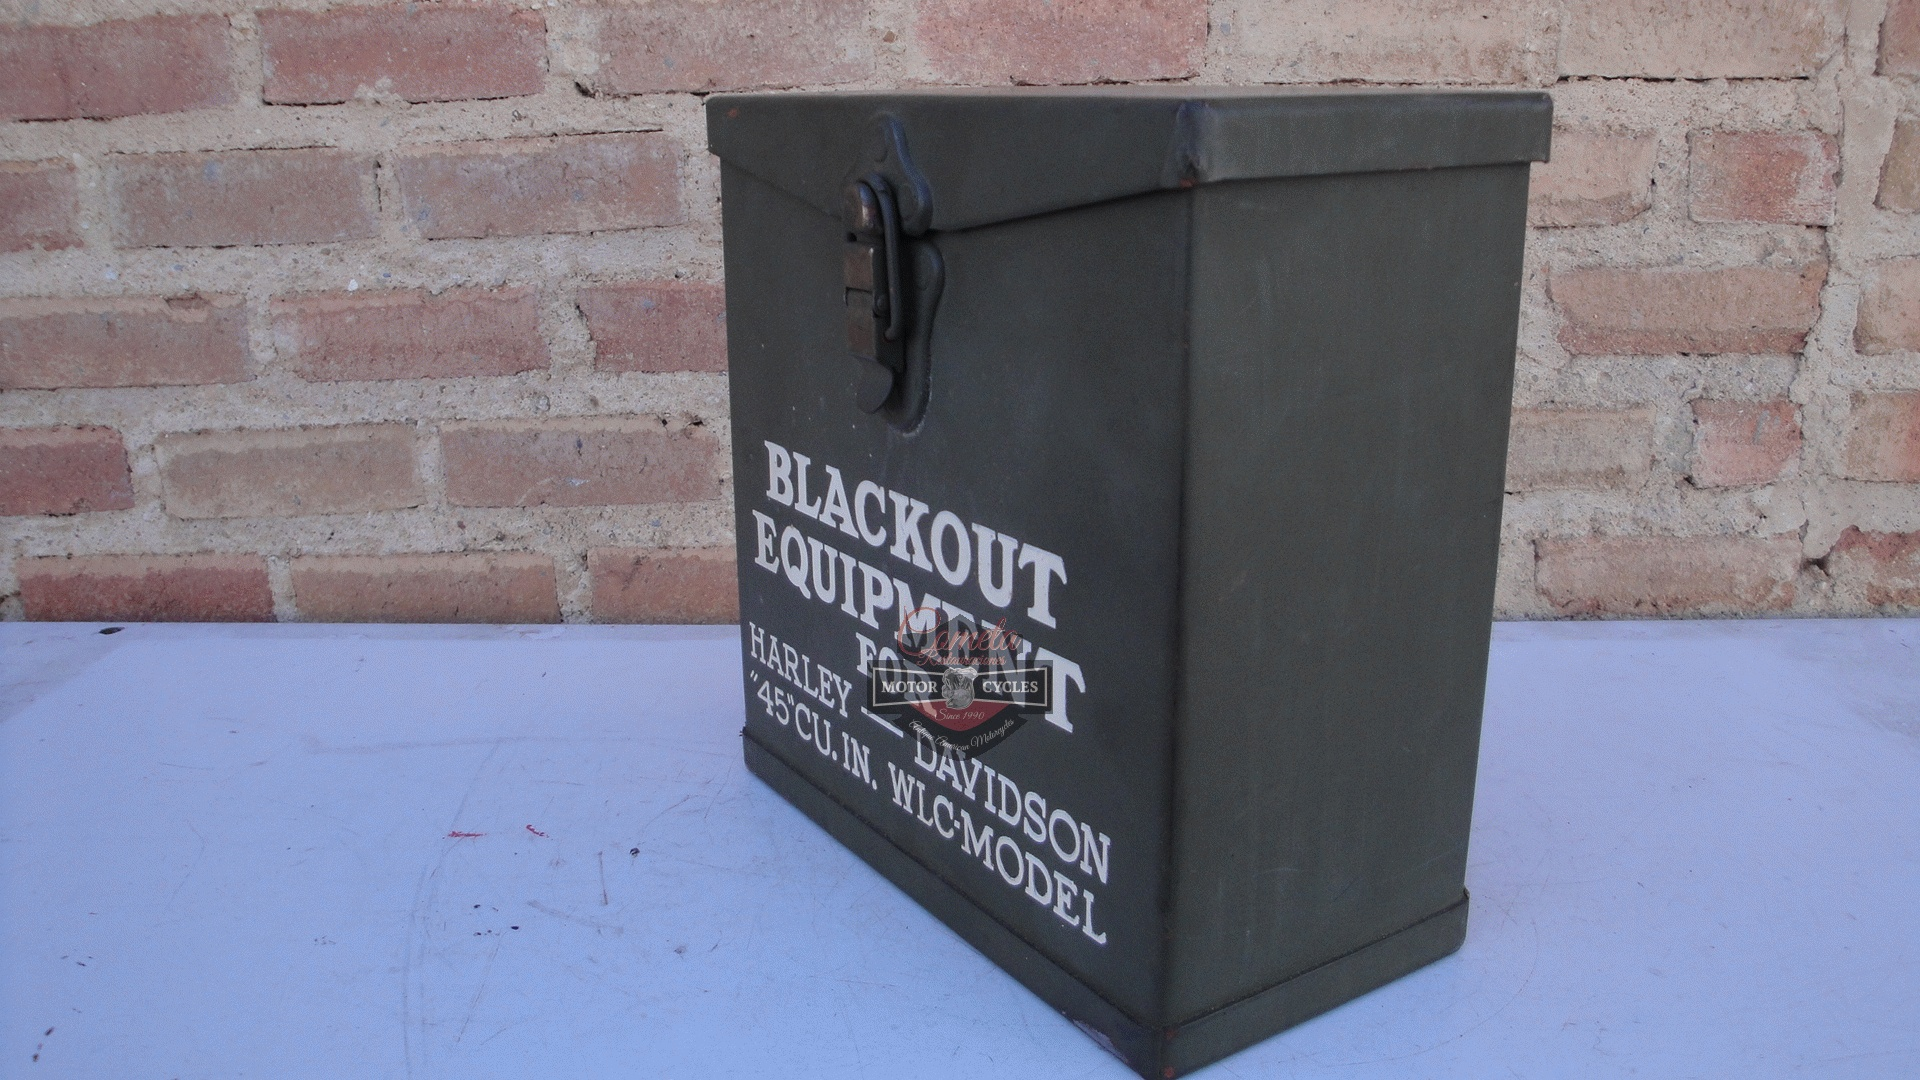 CAJA BLACKOUT EQUIPMENT FOR HARLEY DAVIDSON 45 CU.IN.  WLC MODEL ORIGINAL NUEVA DE LA EPOCA